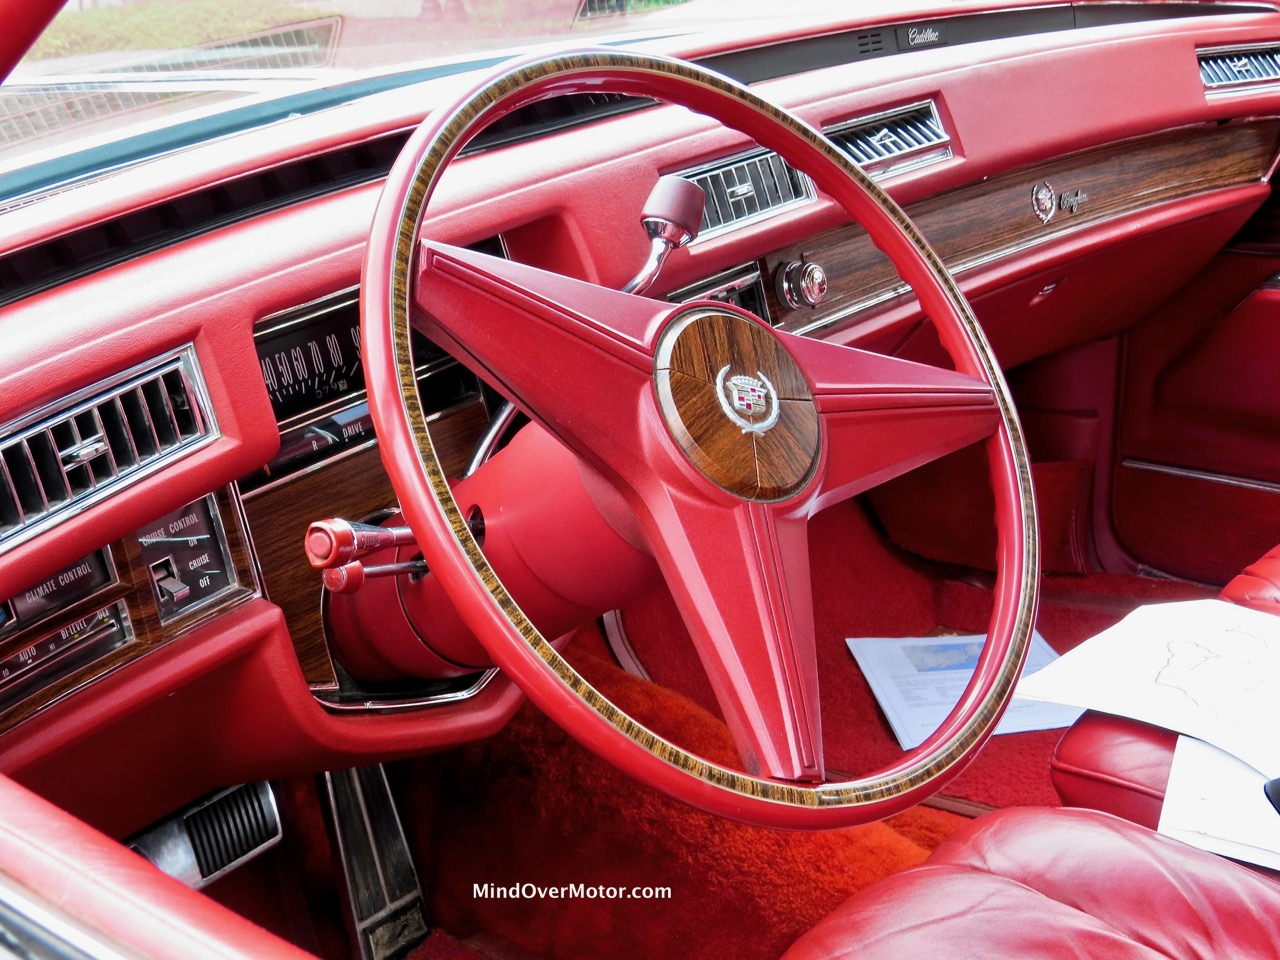 1976 Cadillac Fleetwood Interior 1